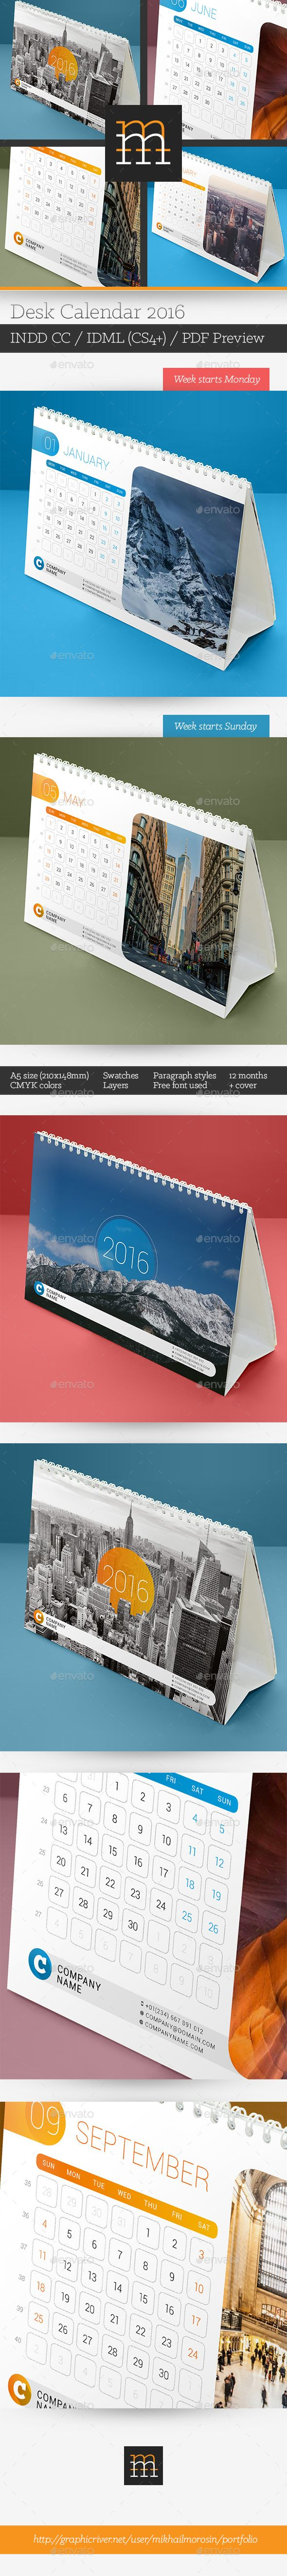 Desk Calendar 2016 Template InDesign INDD #design Download: http://graphicriver.net/item/desk-calendar-2016/14072720?ref=ksioks